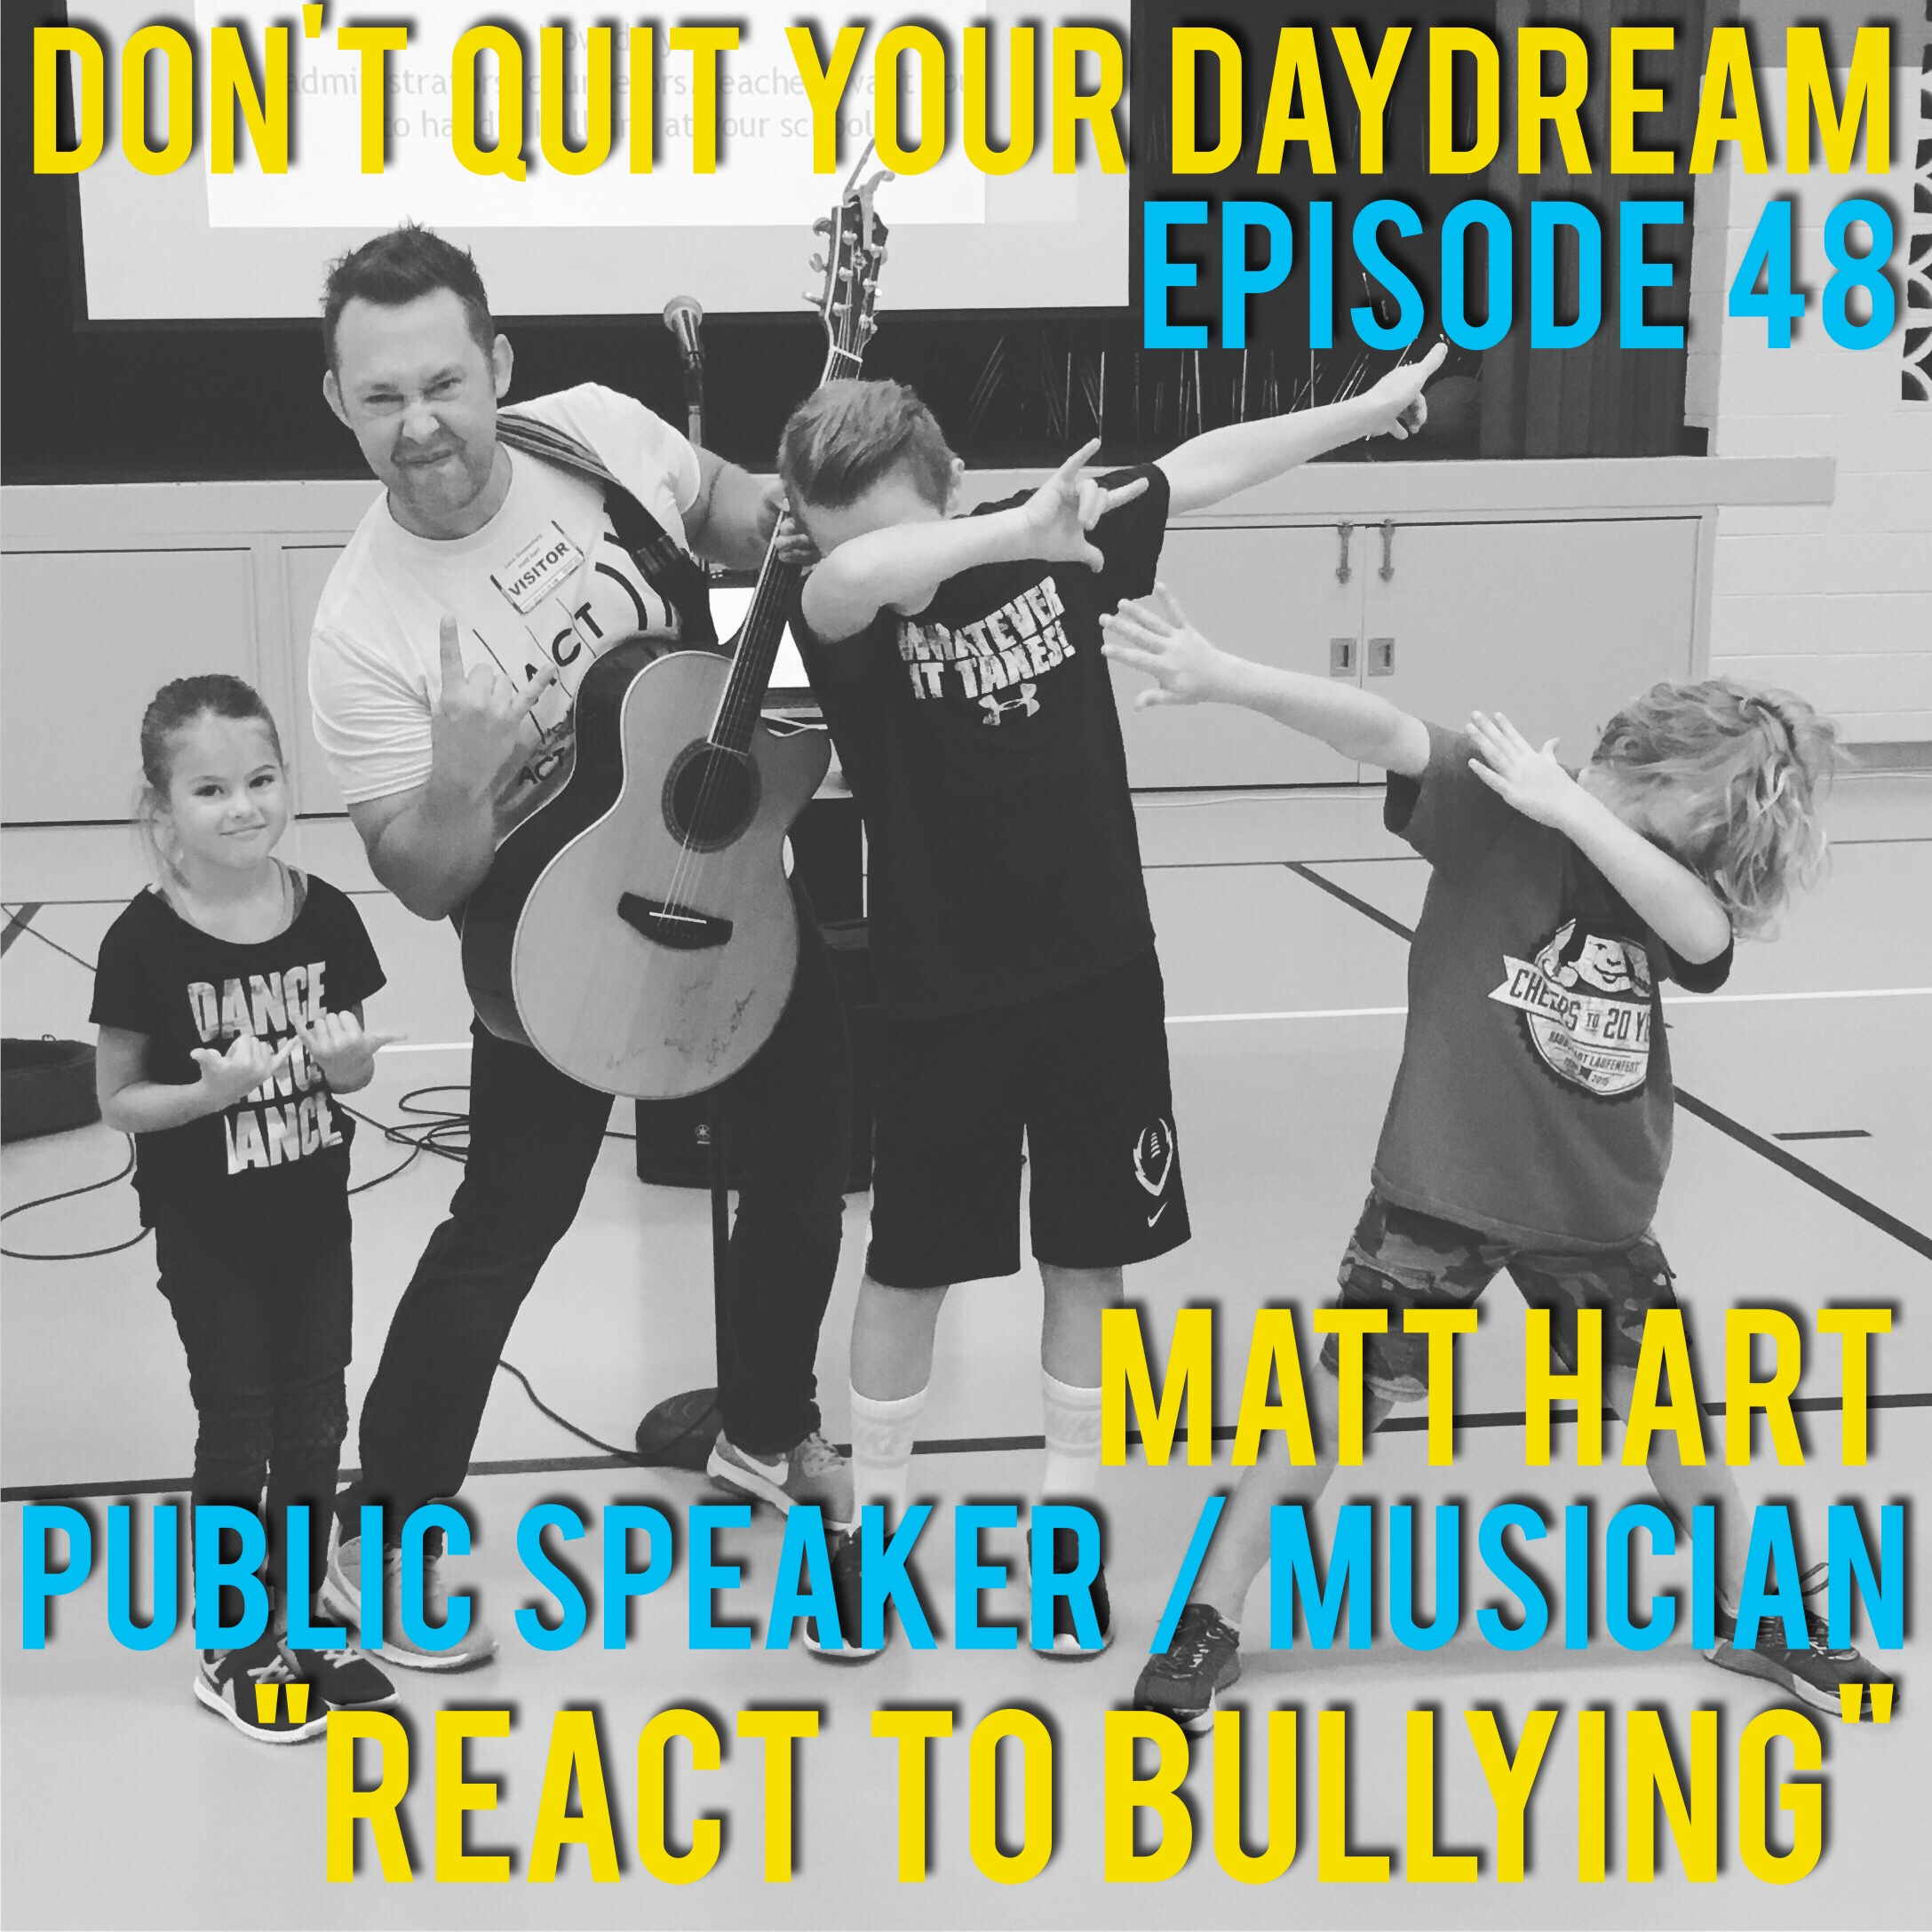 "Episode 48 of Don't Quit Your Daydream is with public speaker Matt Hart who dropped by to discuss his anti-bullying campaign, ""ReACT to Bullying"". Matt discusses the impact he is able to make on students with his presentations and positive messaging. Recently celebrating his 100th school visit, Matt has come up with the perfect way to inform children on how they should handle bullies. Find out more about ReACT to Bullying by visiting:  https://www.facebook.com/reacttobullying/  and stop by to see Matt yourself on Feb.24th:  https://www.facebook.com/events/1843020535939736/   Song of the week is ""As Far As We Can Go"" from the indie pop duo: Seeyatmrw. With a blend of positivity and acoustic goodness, this band is sure to put you in a good mood.  https://www.facebook.com/seeyatmrw/"